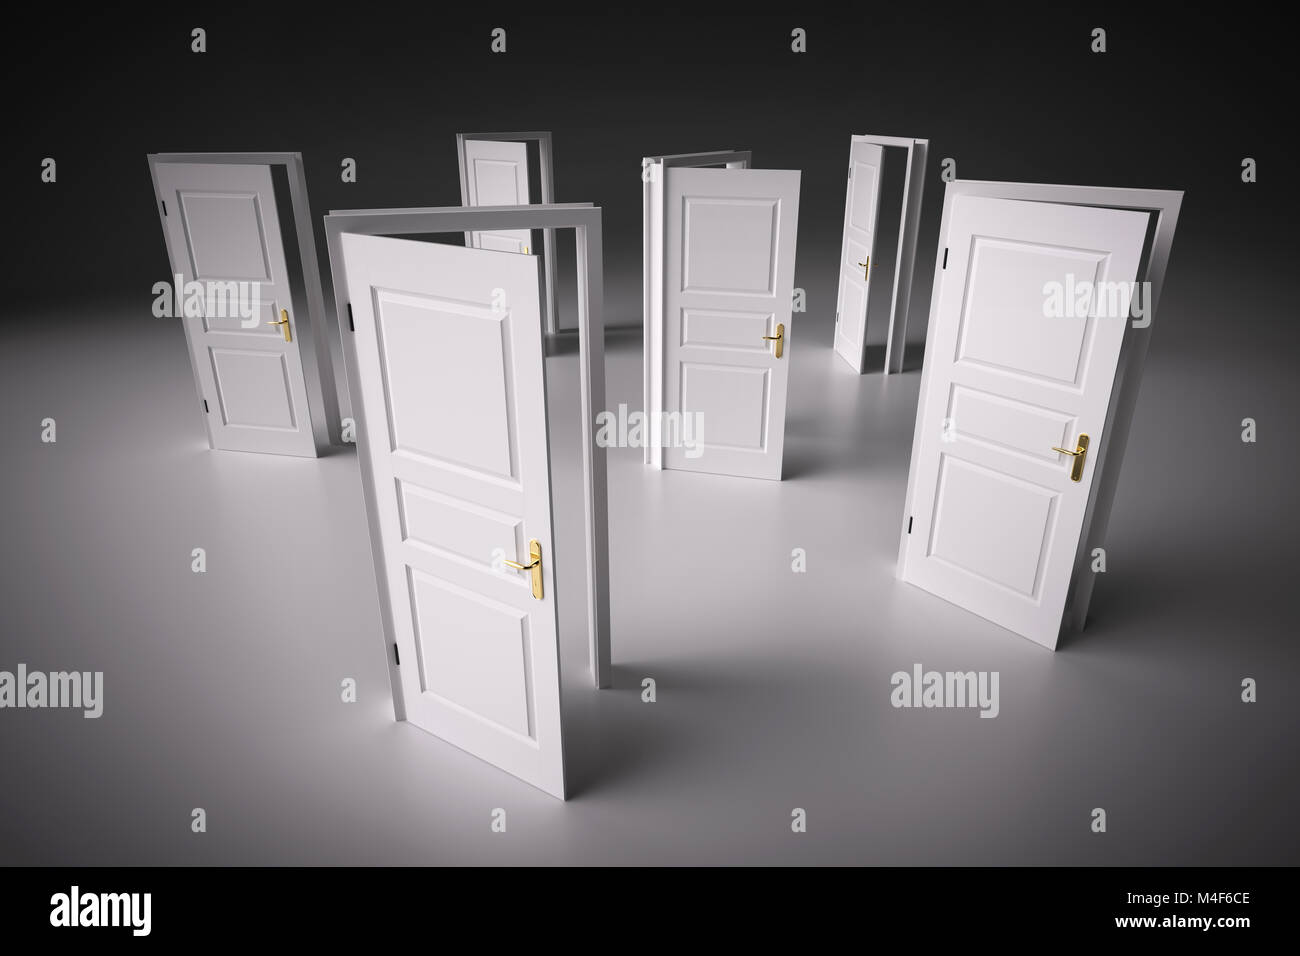 Many ways to choose from, open doors. Decision making - Stock Image